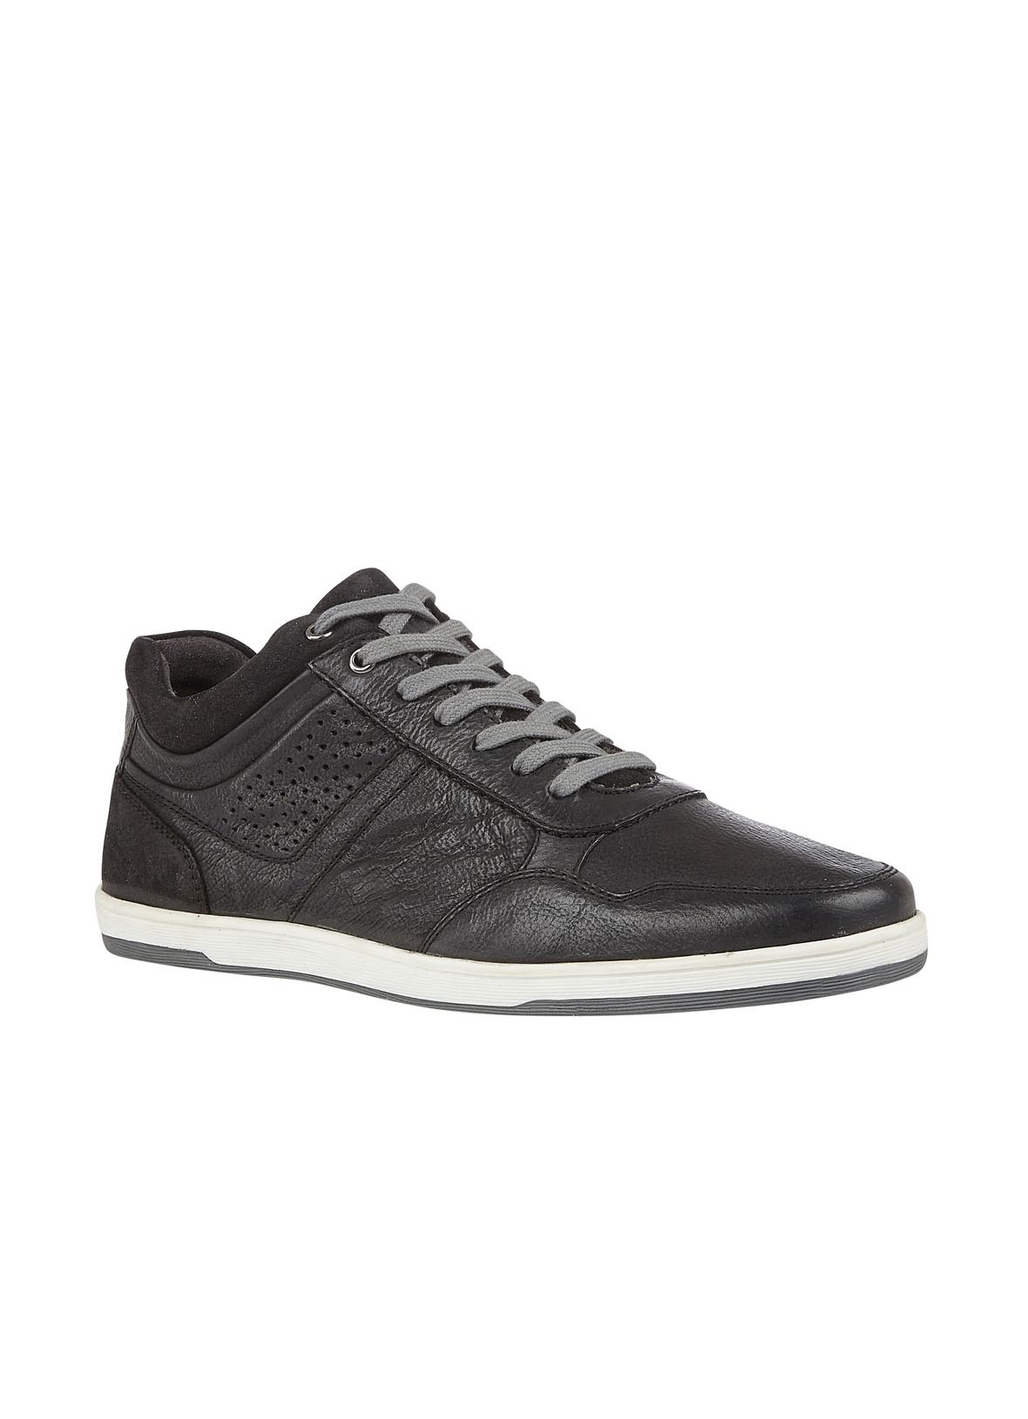 Lotus Willard Leather Trainer Style Shoe in Black